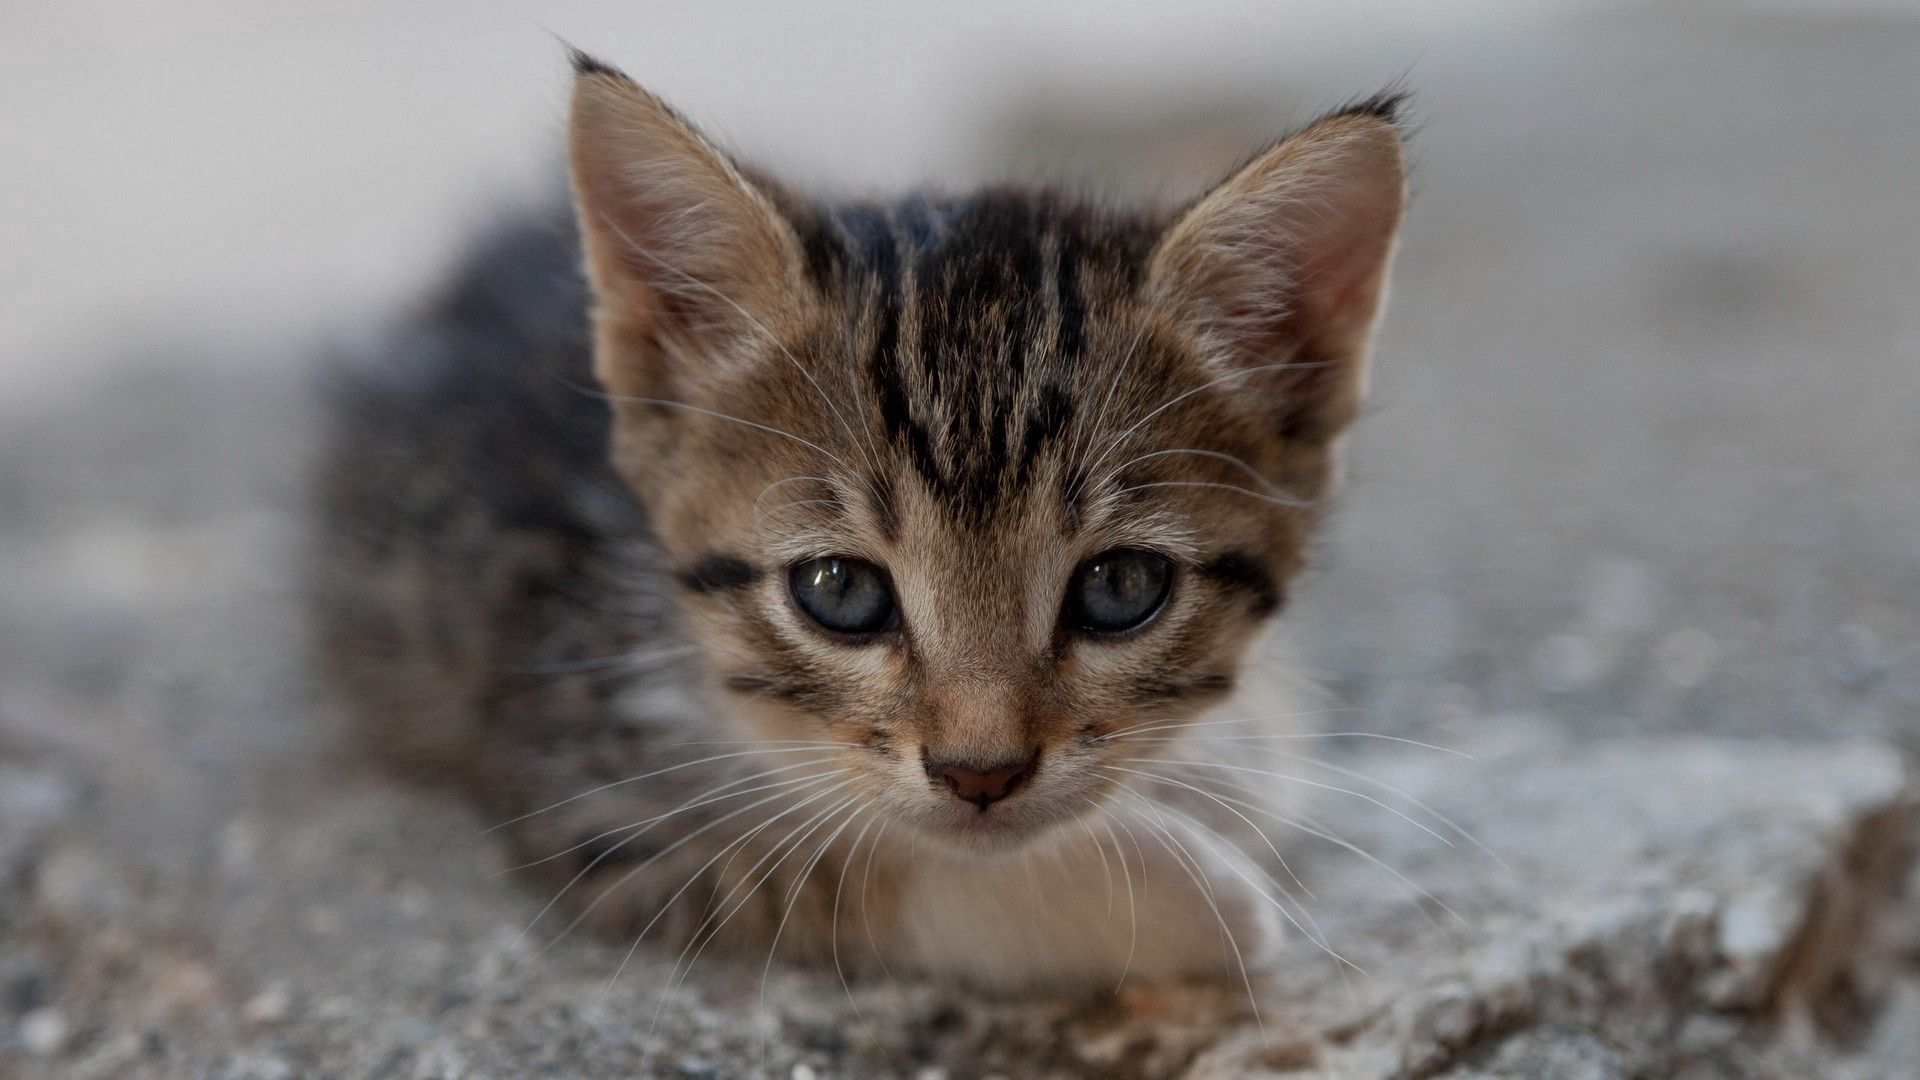 74682 download wallpaper Animals, Kitty, Kitten, Muzzle, Kid, Tot, Sight, Opinion screensavers and pictures for free